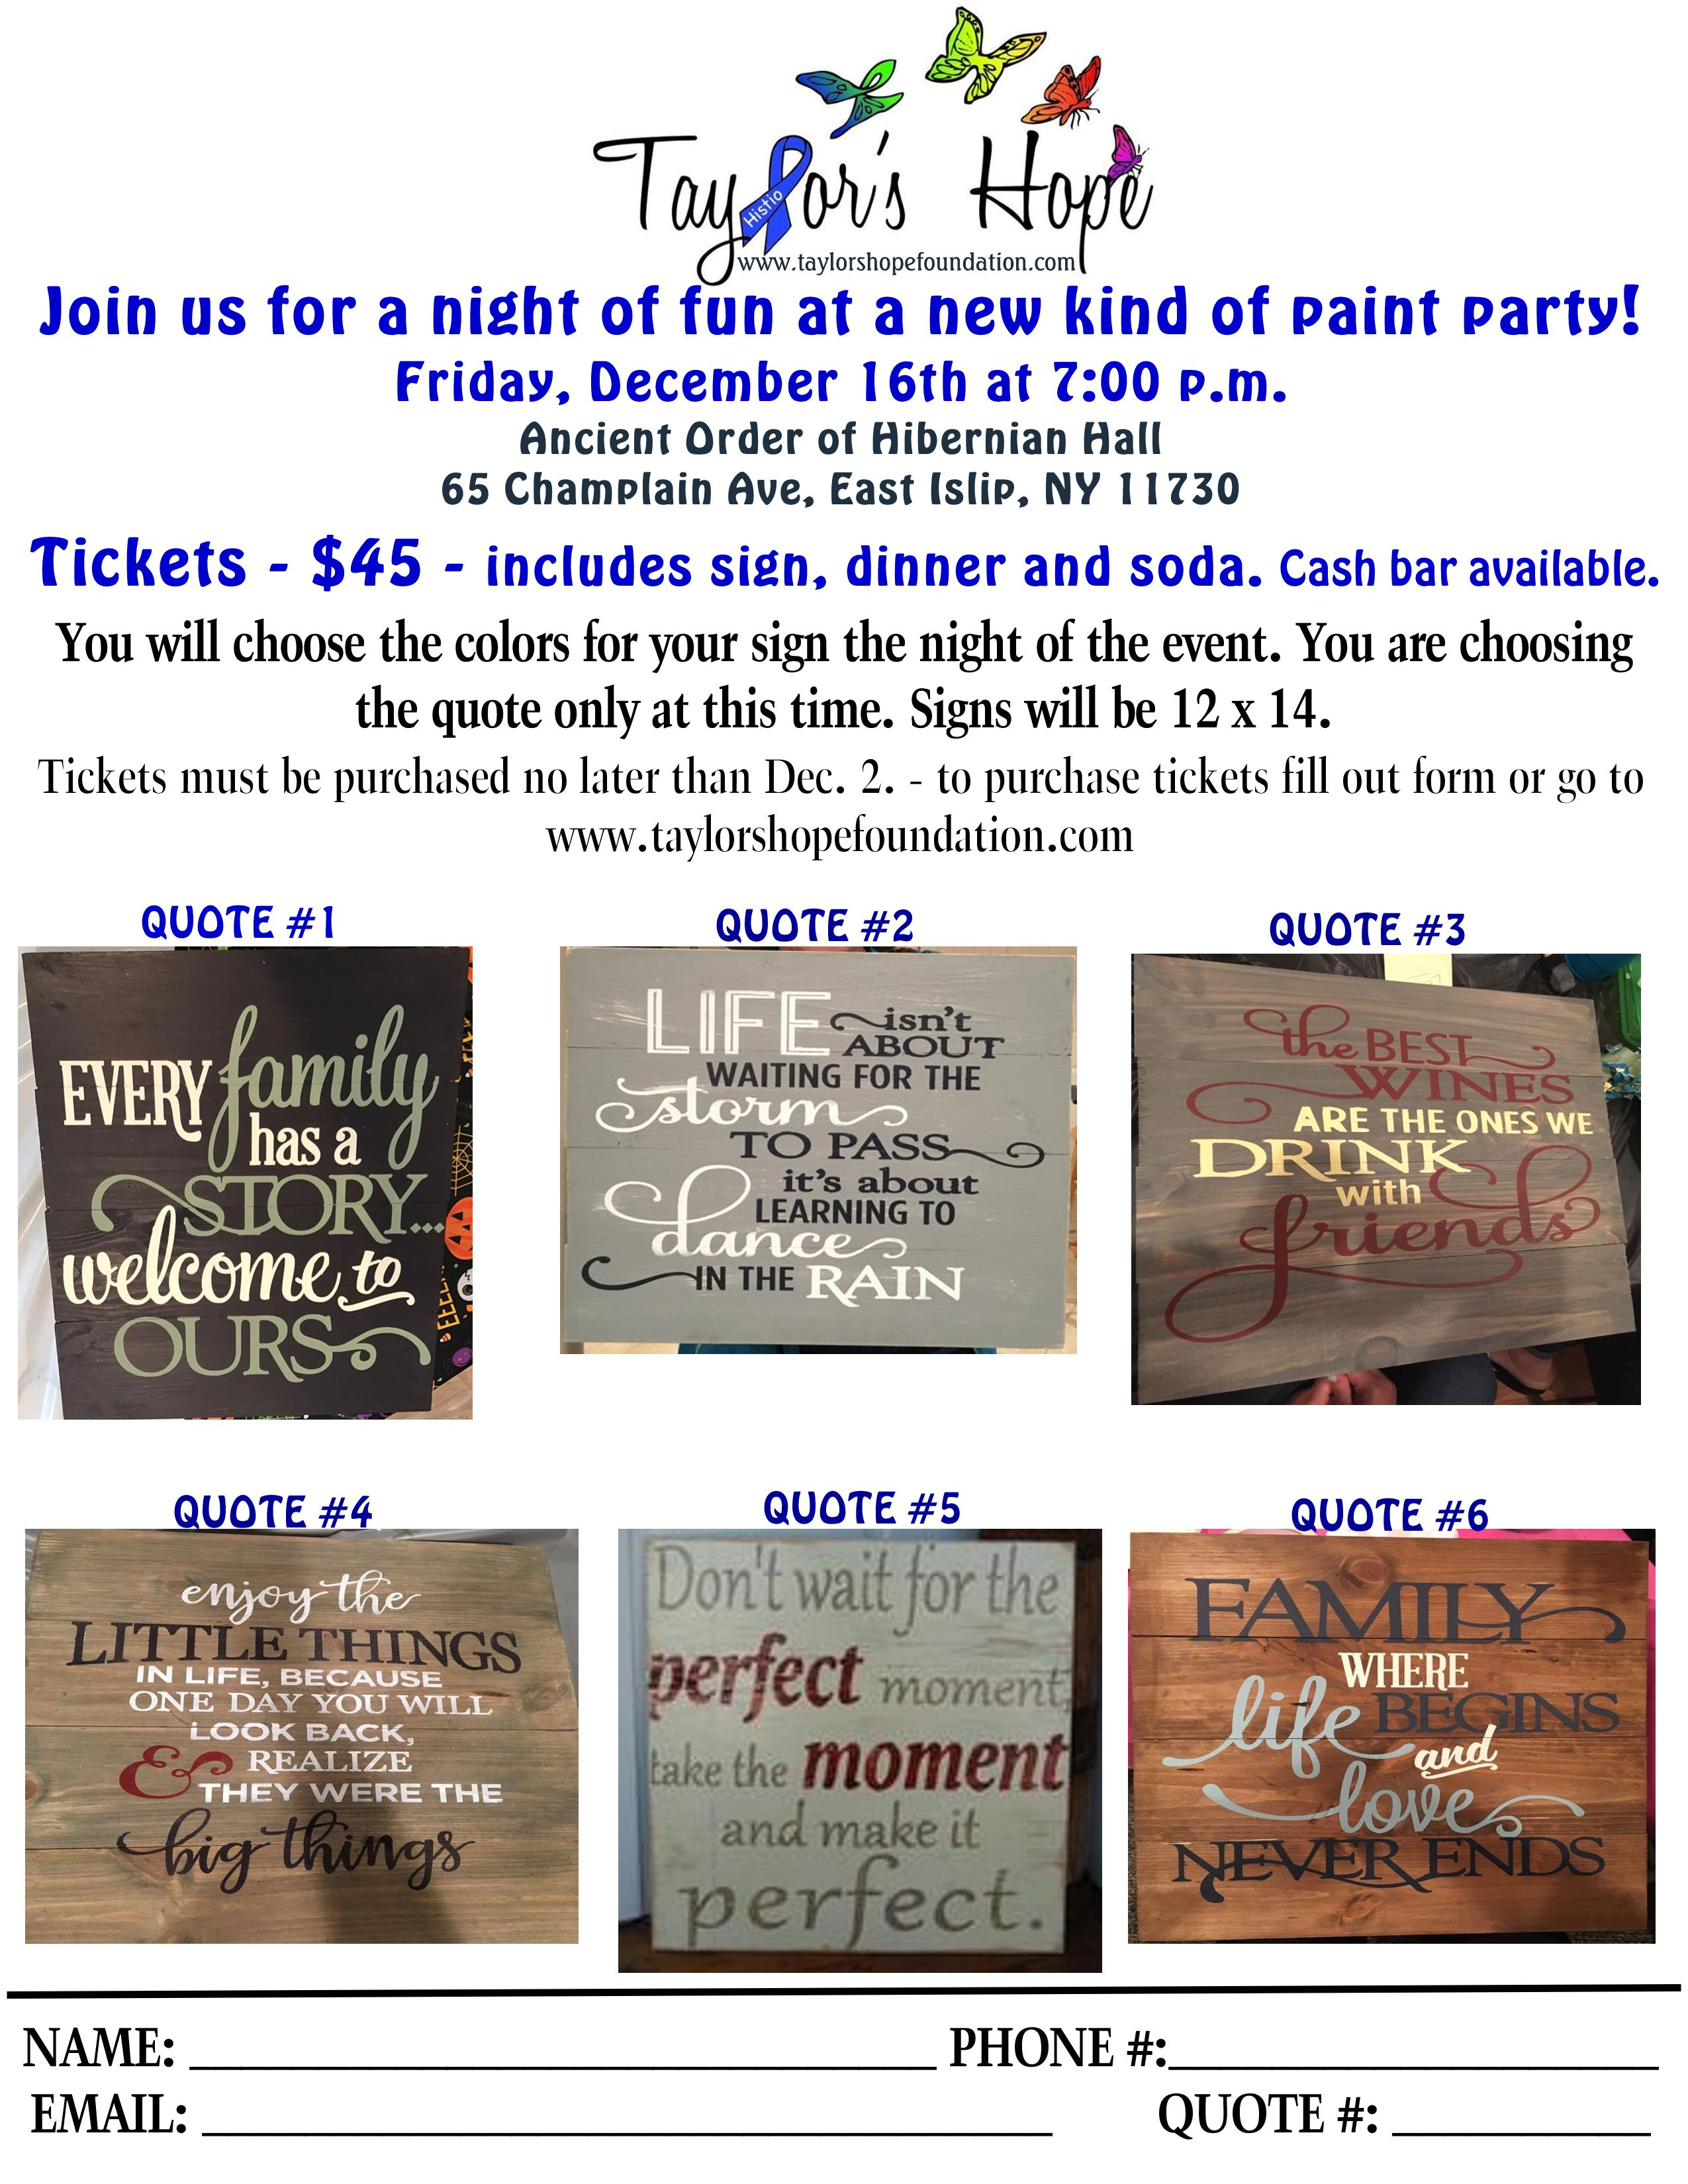 Join us for a night of fun at a new type of paint party!